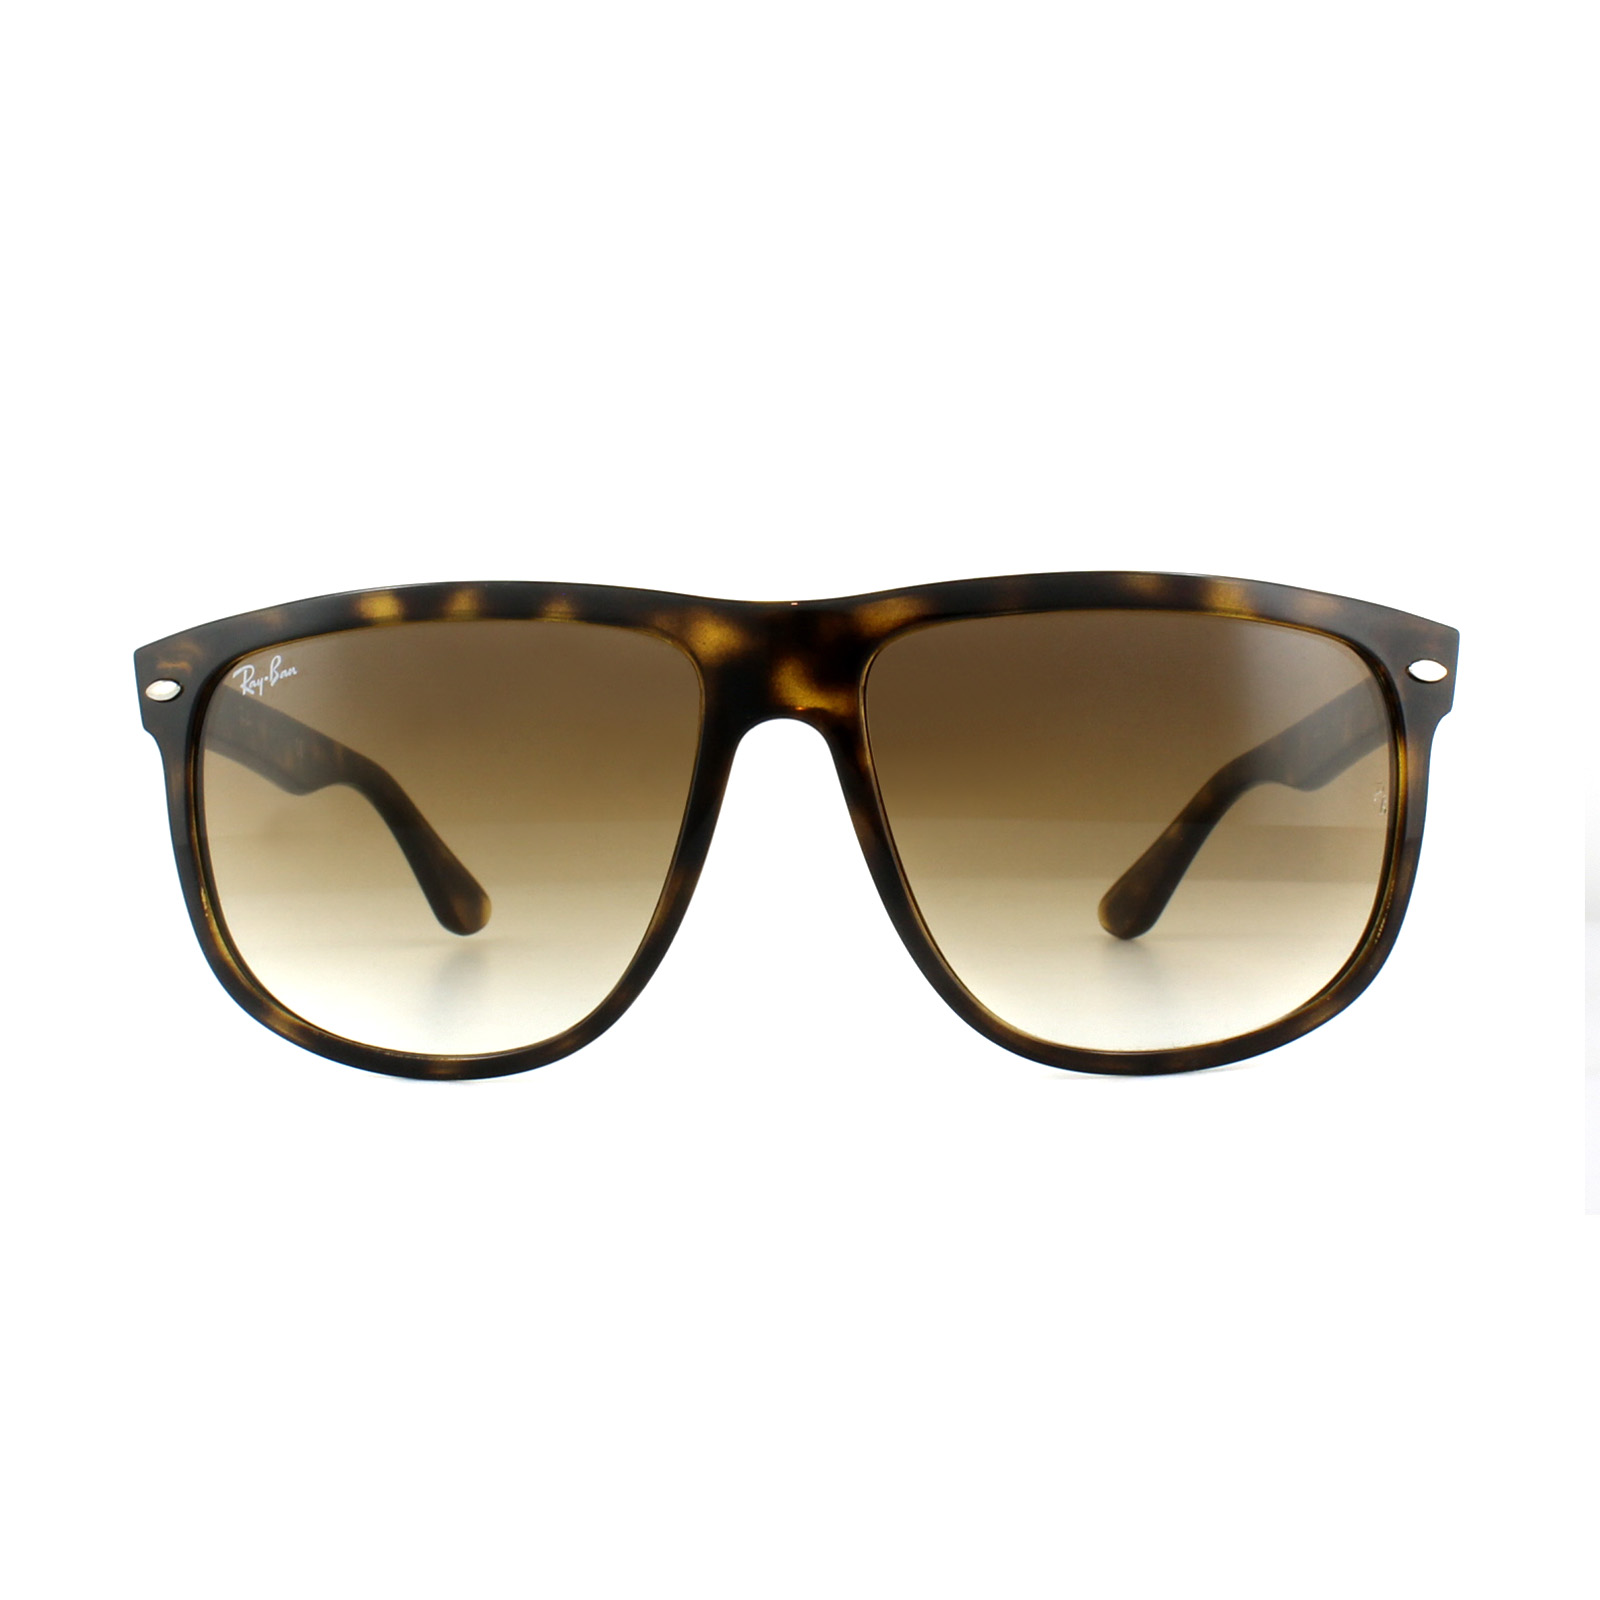 1d029631078 Sentinel Ray-Ban Sunglasses 4147 Light Havana Brown Gradient 710 51 Large  60mm